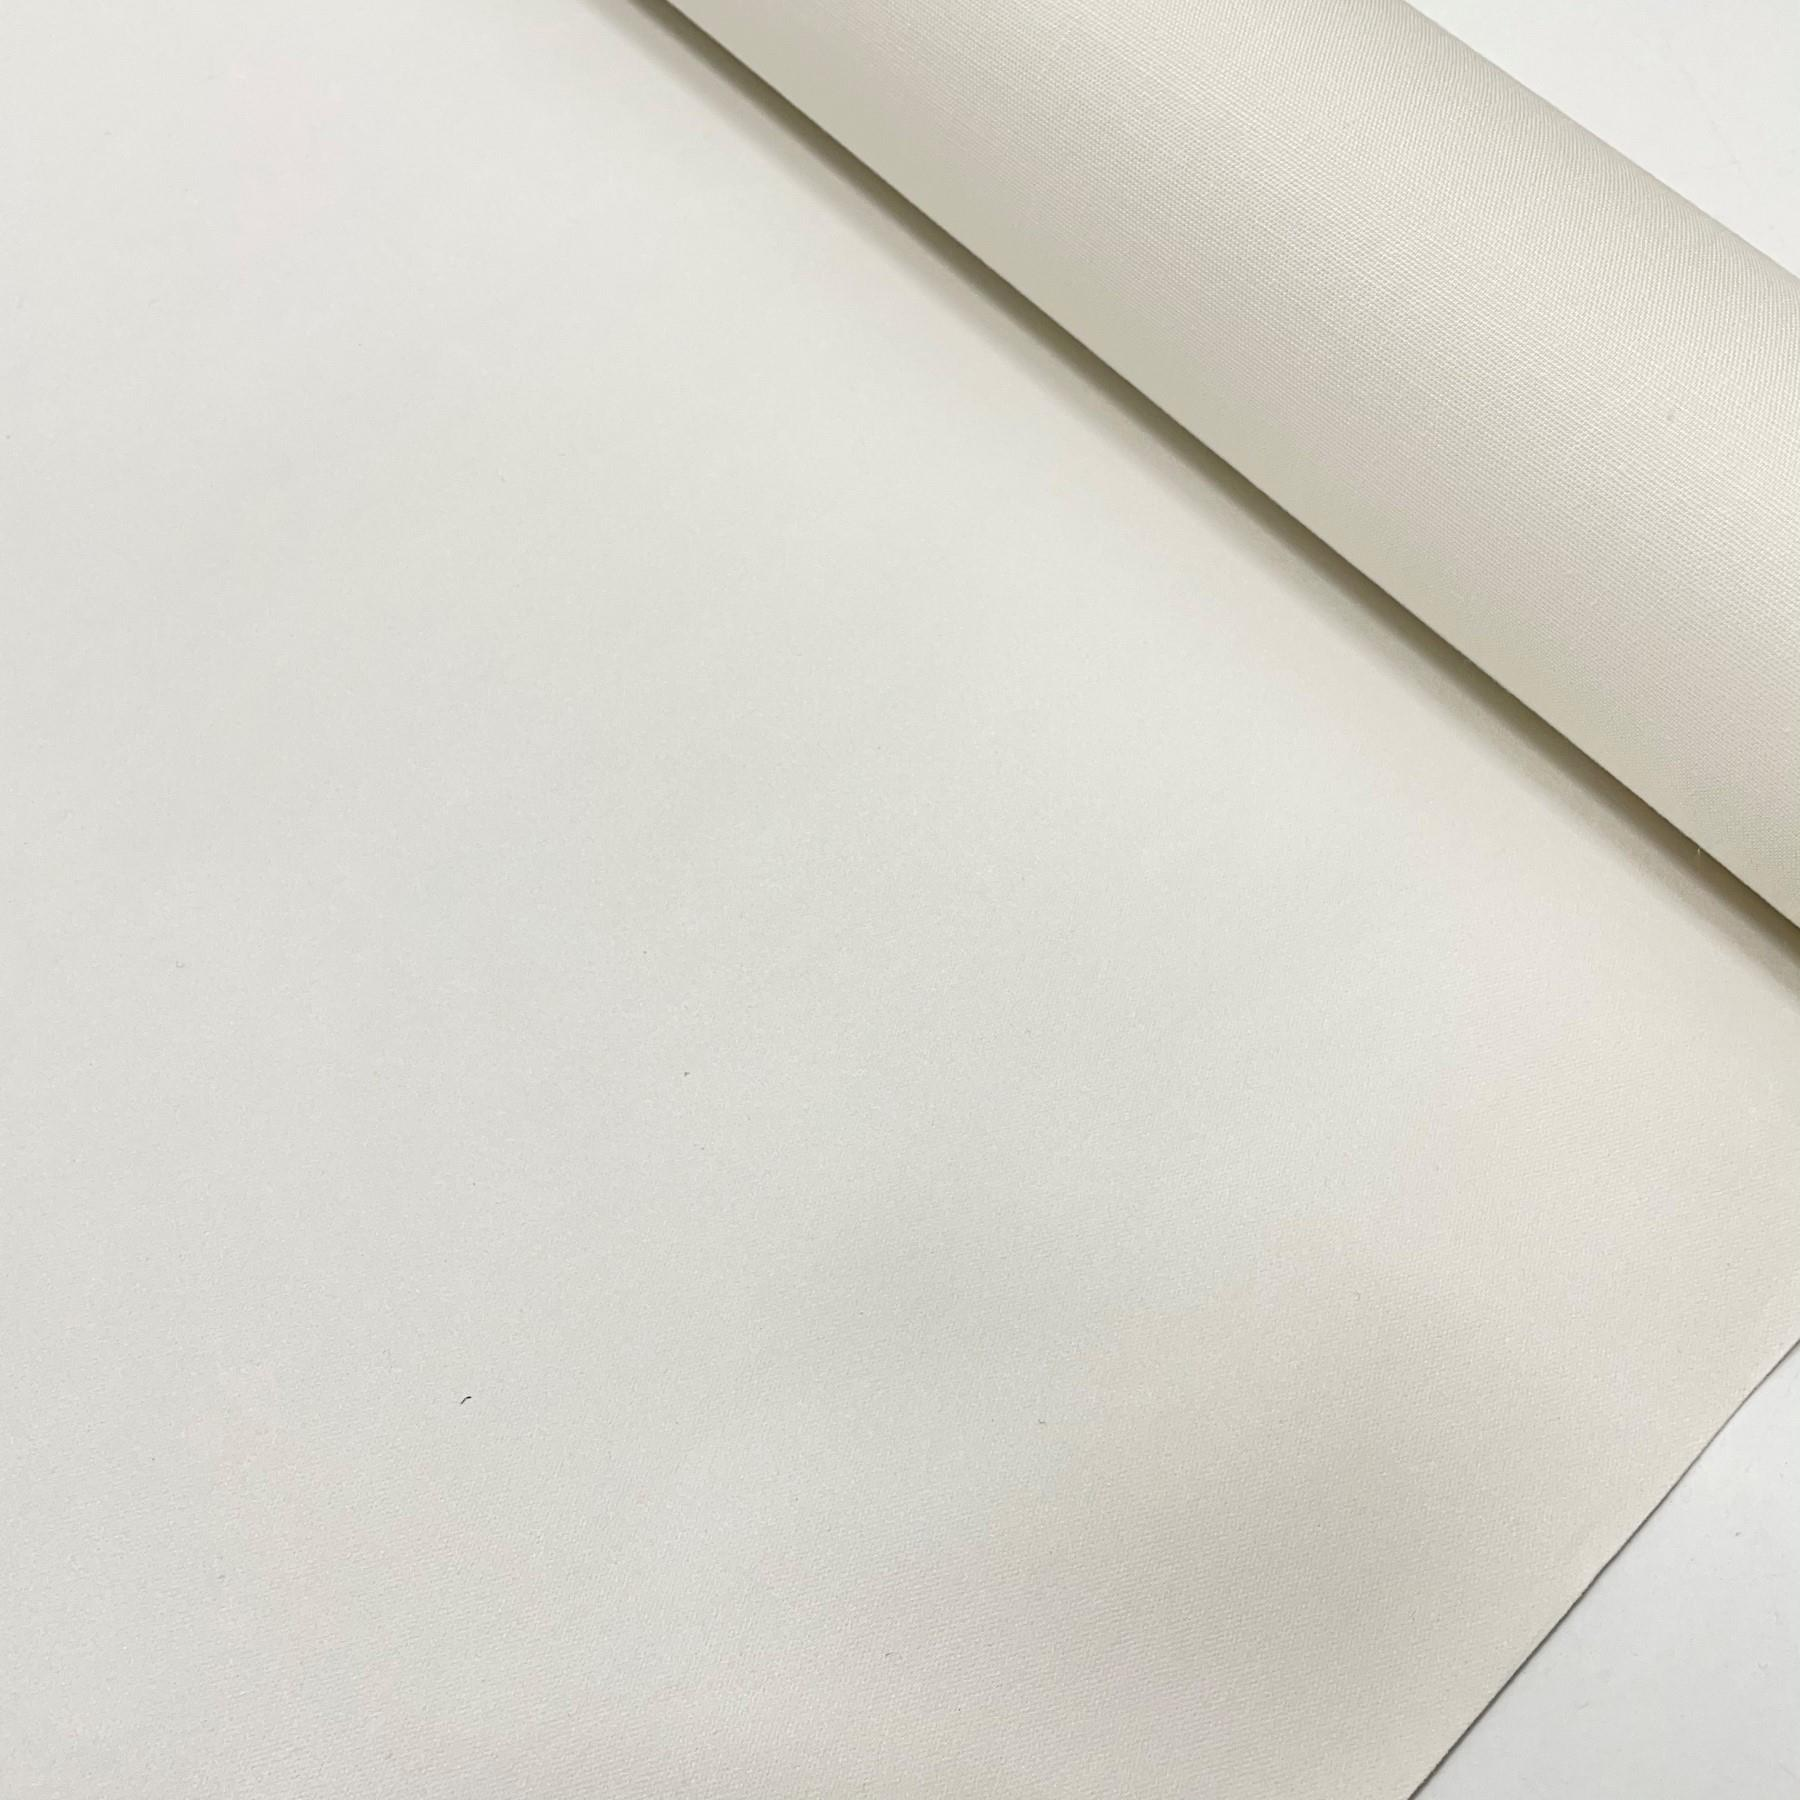 thumbnail 3 - COTTON THERMAL CURTAIN BLIND LINING 3PASS BLACKOUT REVERSIBLE FABRIC MATERIAL